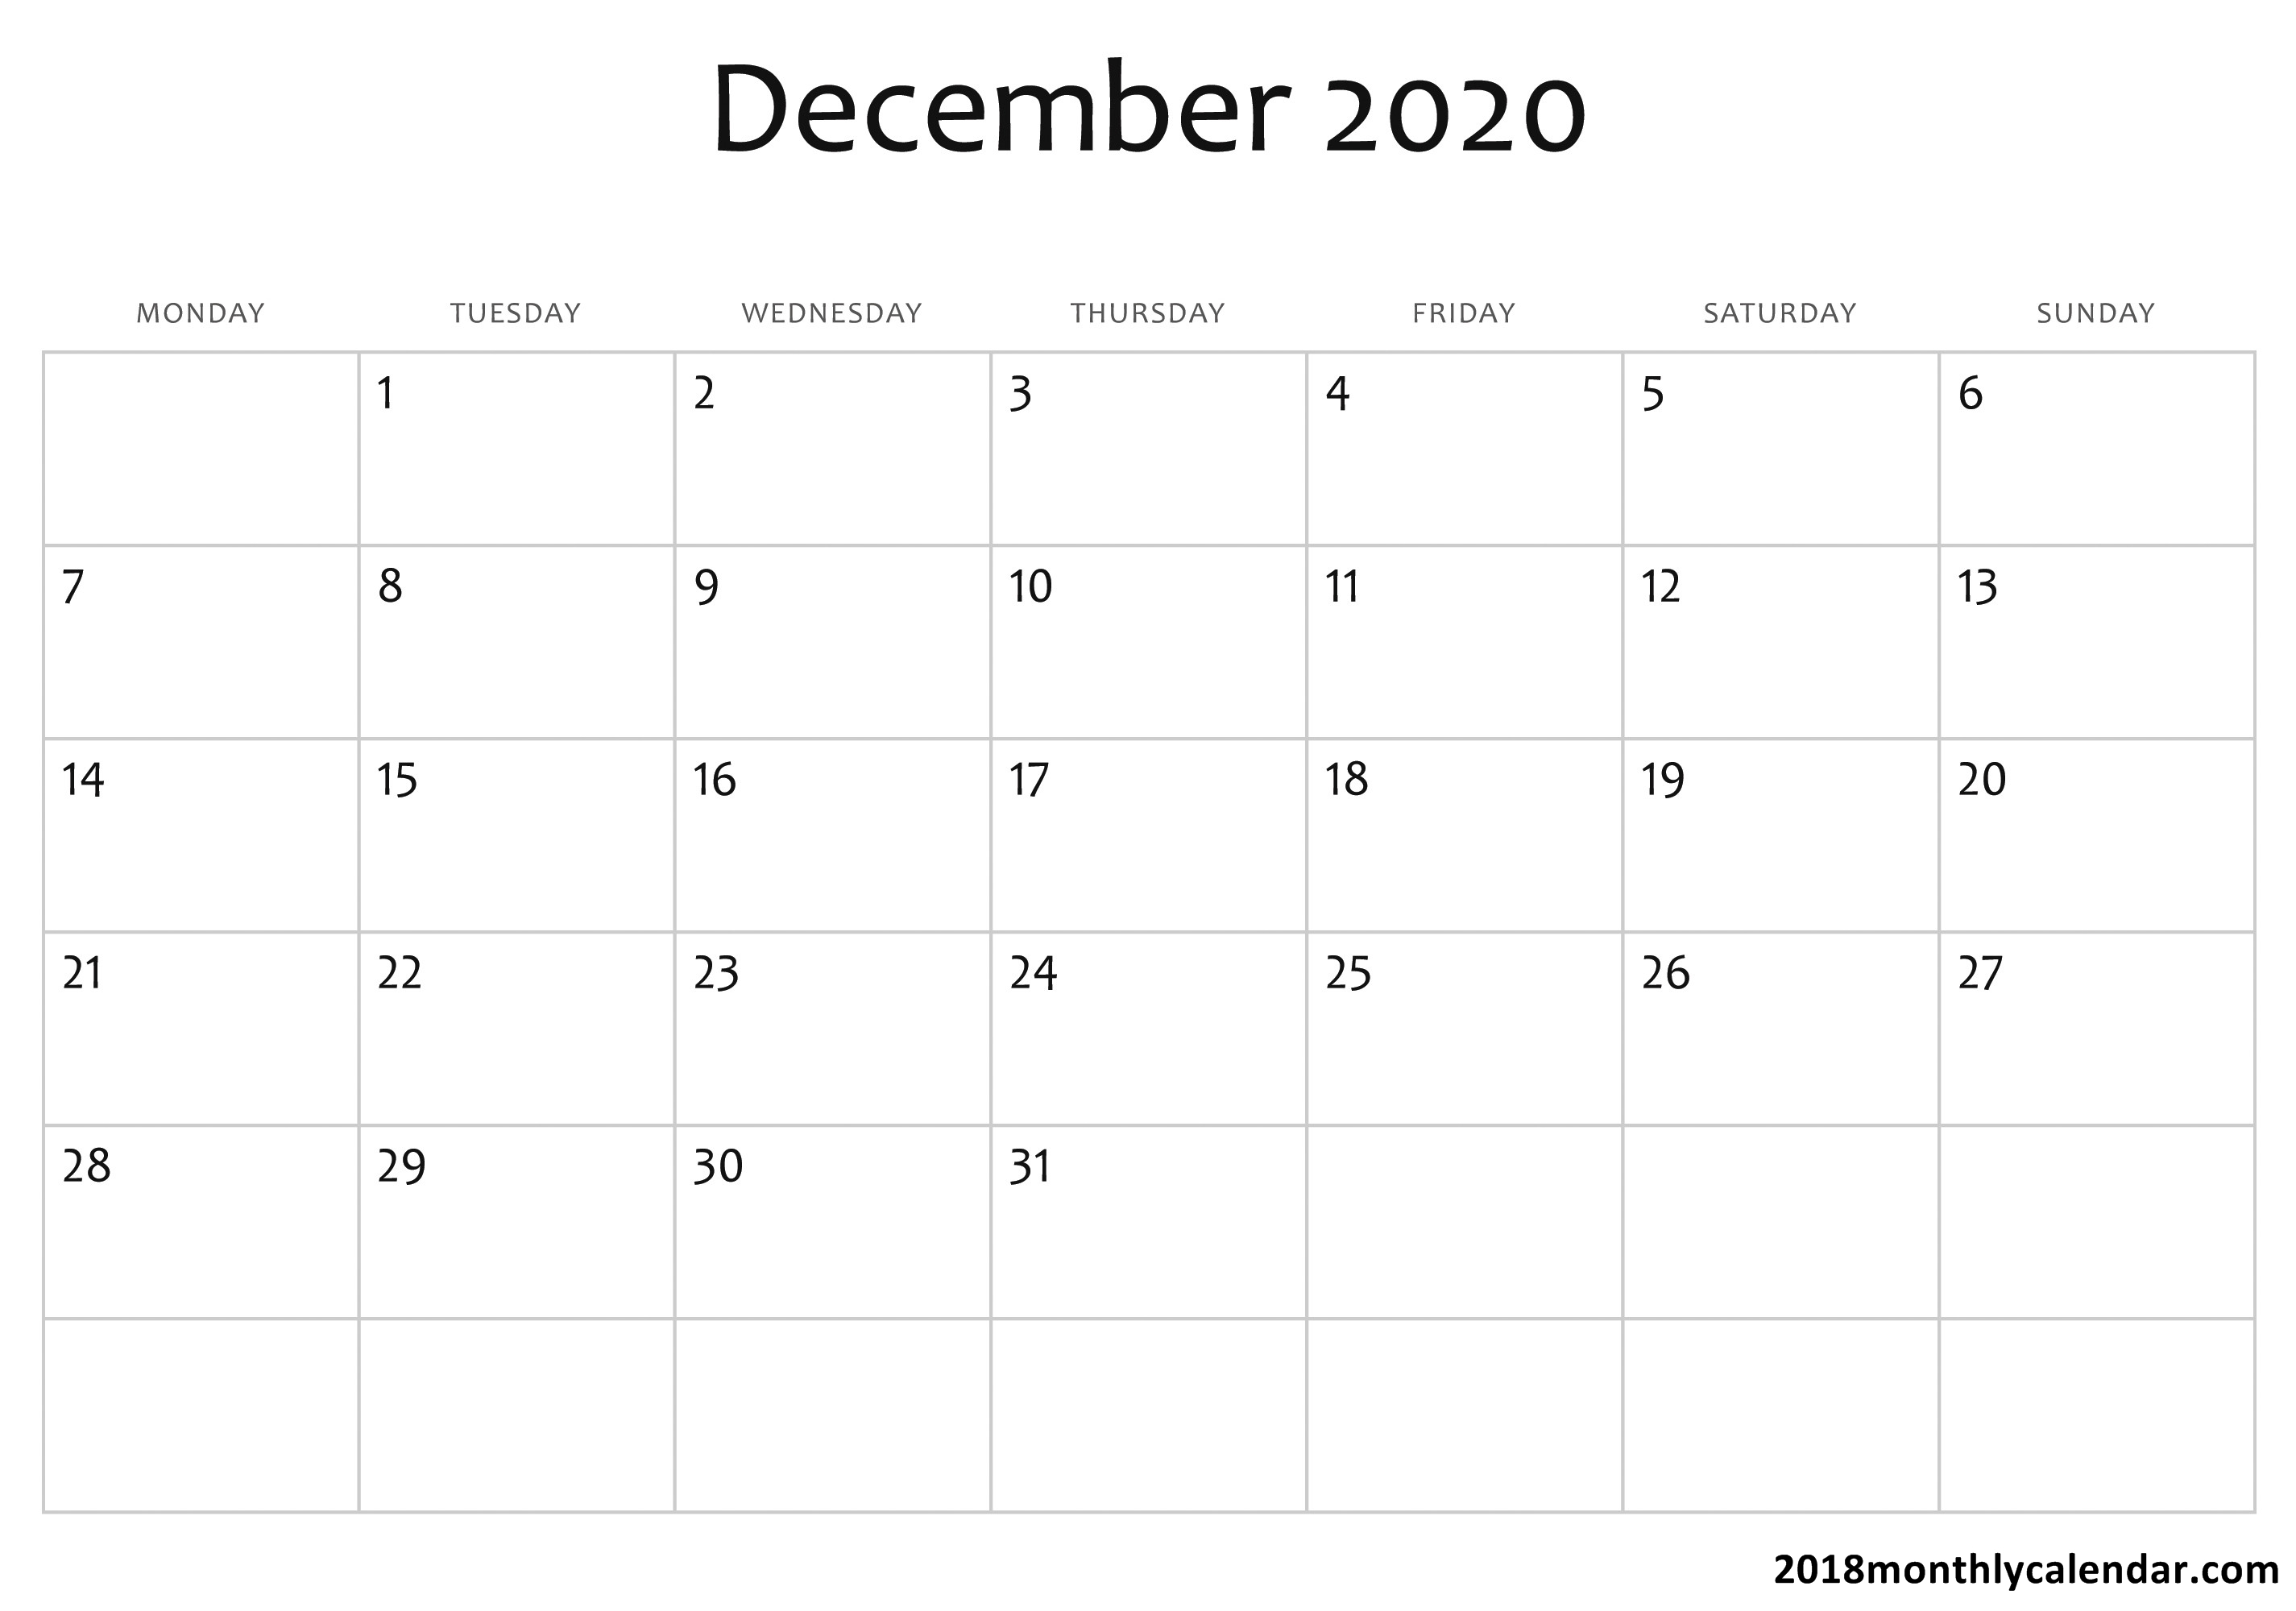 Download December 2020 Calendar – Blank & Editable within 123 Calendars December 2020